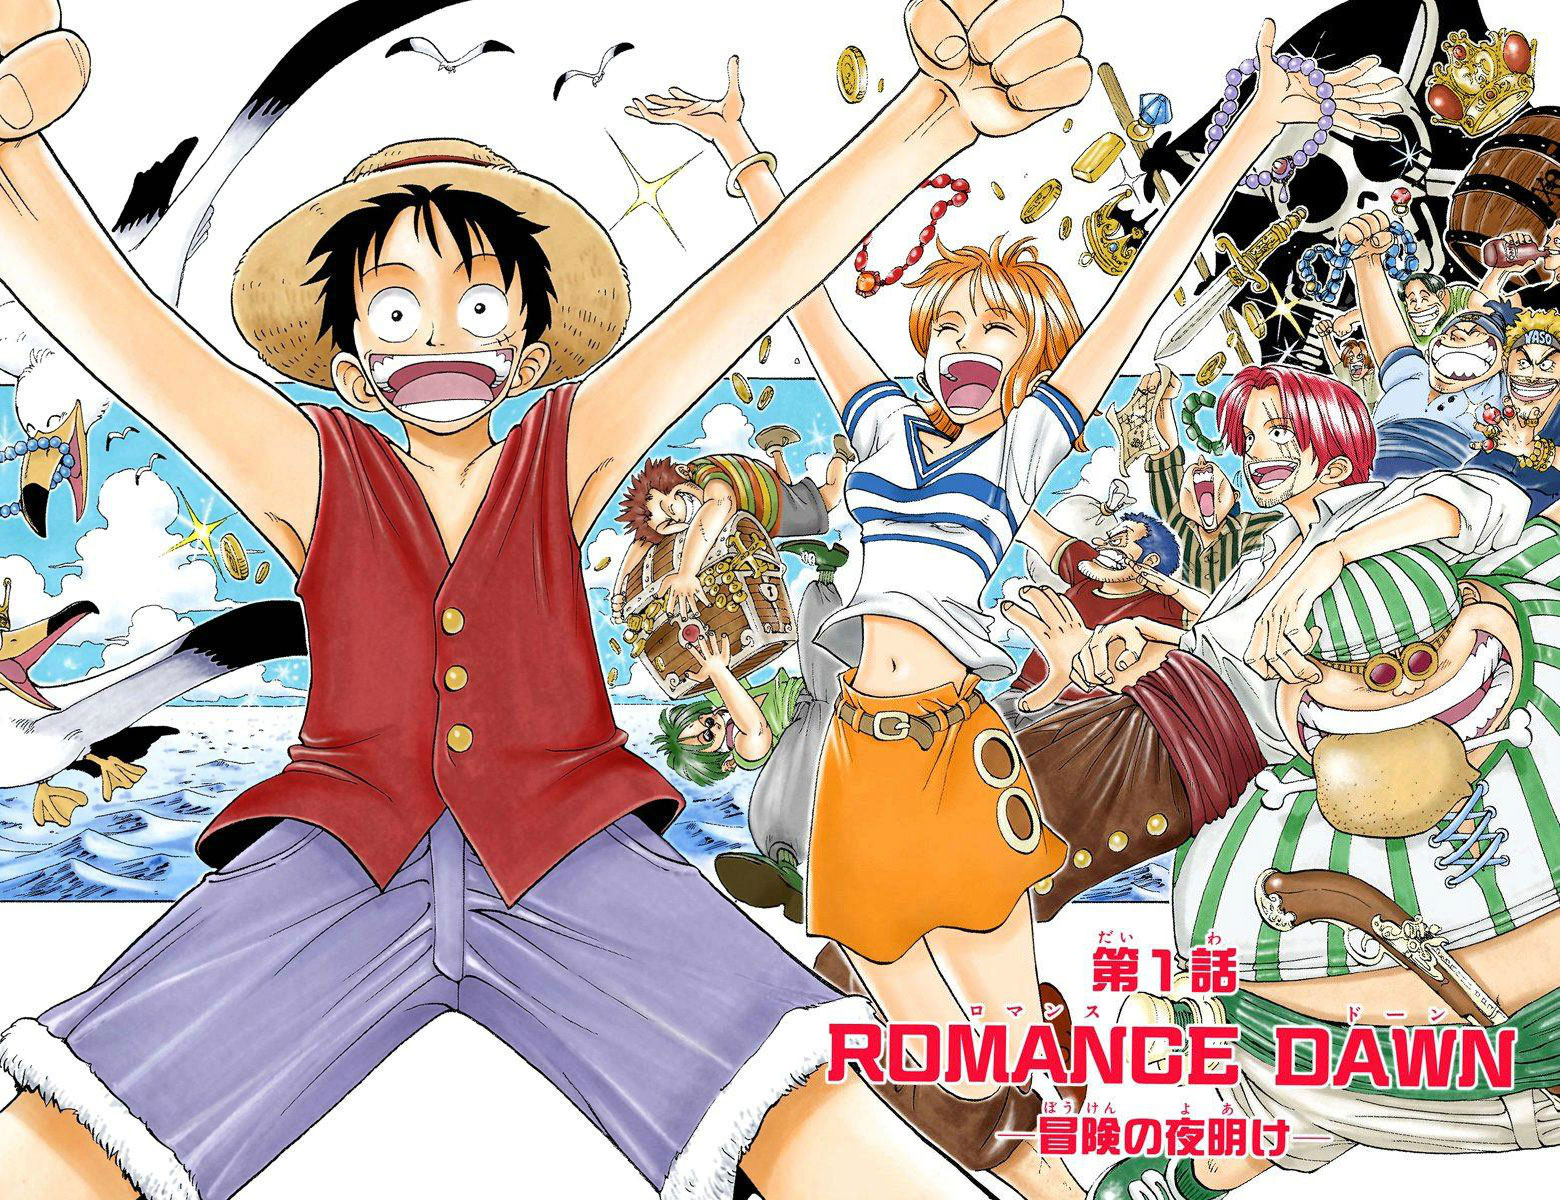 One-Piece-Chapter-One-title-cover-romance-dawn-The-dawn-of-Adventure